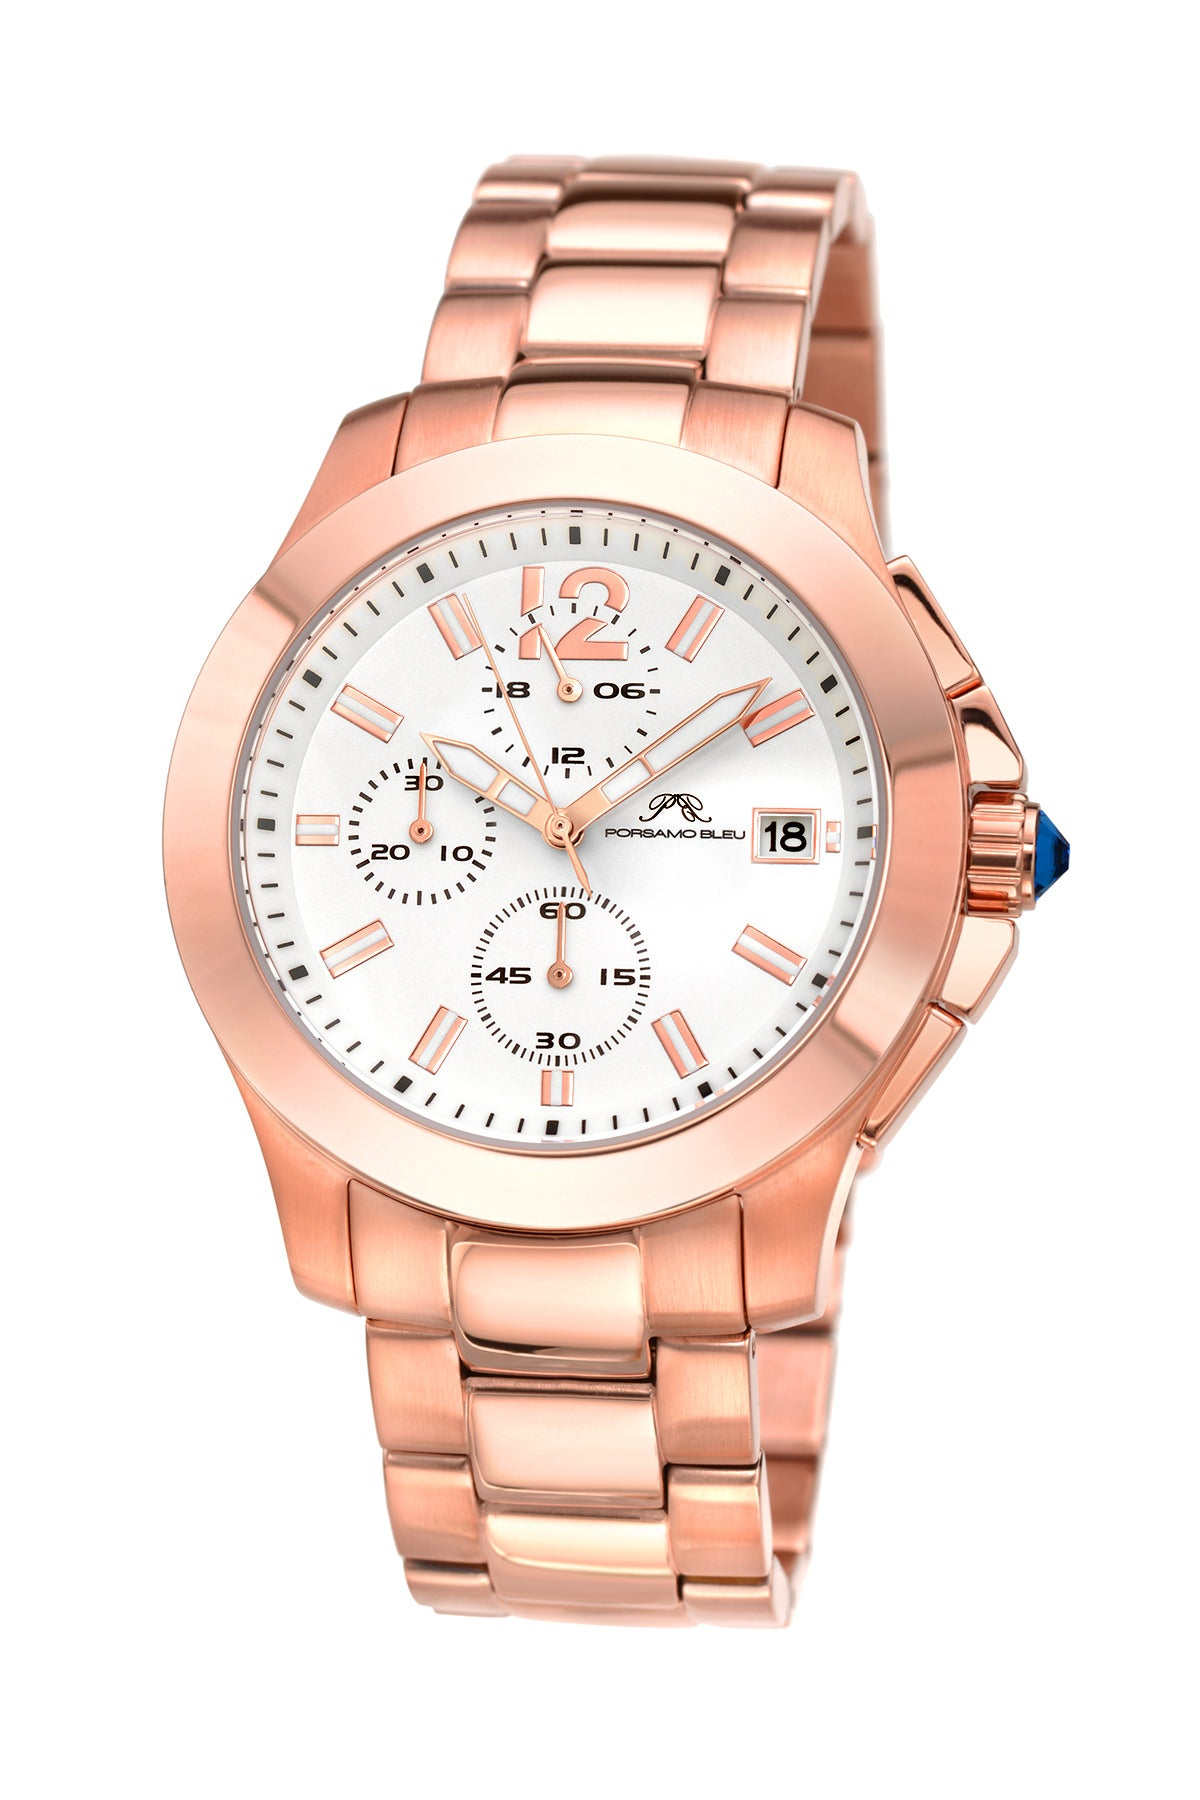 Porsamo Bleu Harper luxury chronograph women's stainless steel watch, rose, white 521CHAS